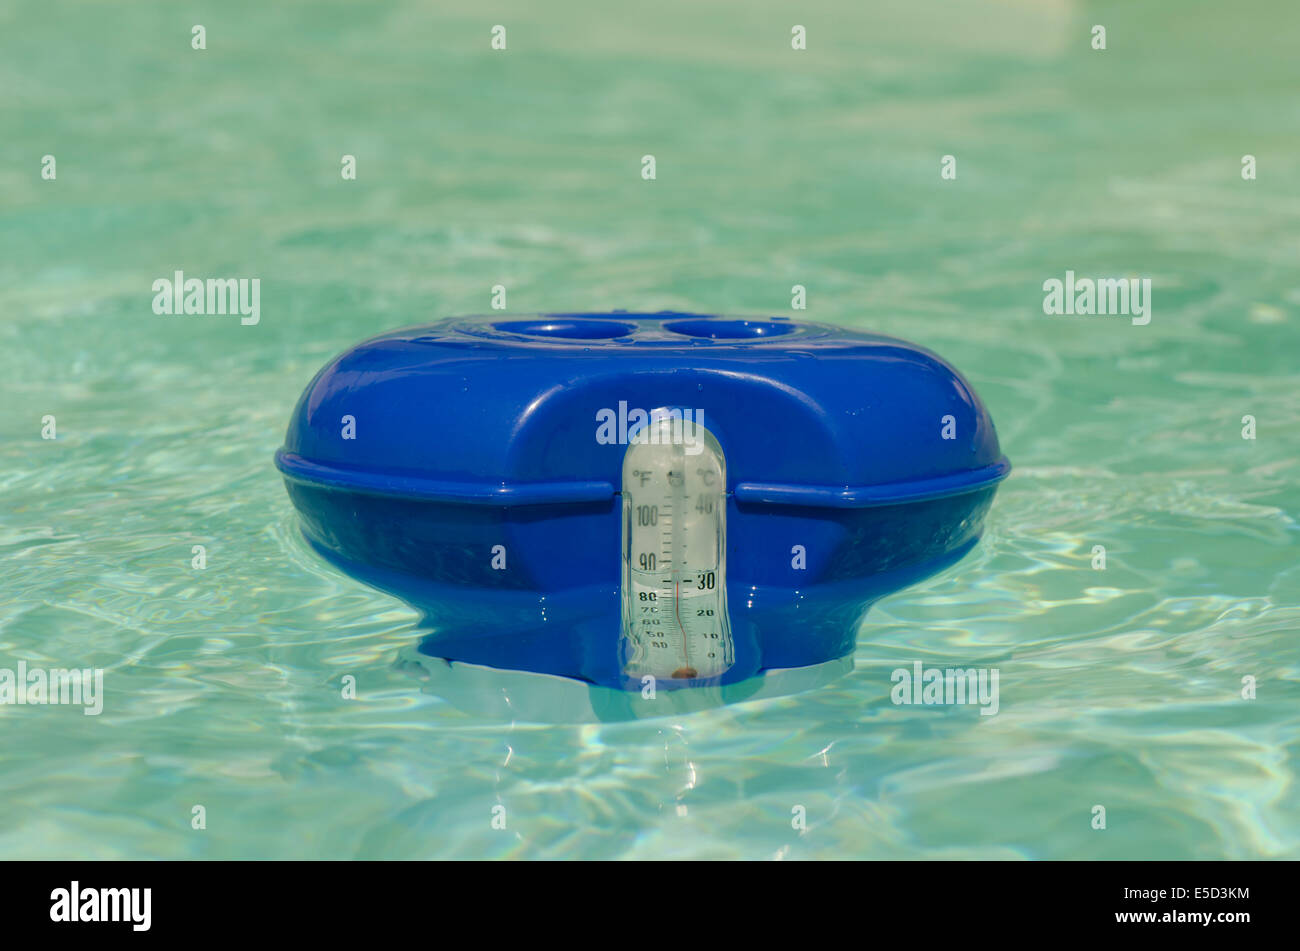 Chlortabletten Pool Zusammensetzung Pool Thermometer Stockfotos Pool Thermometer Bilder Alamy